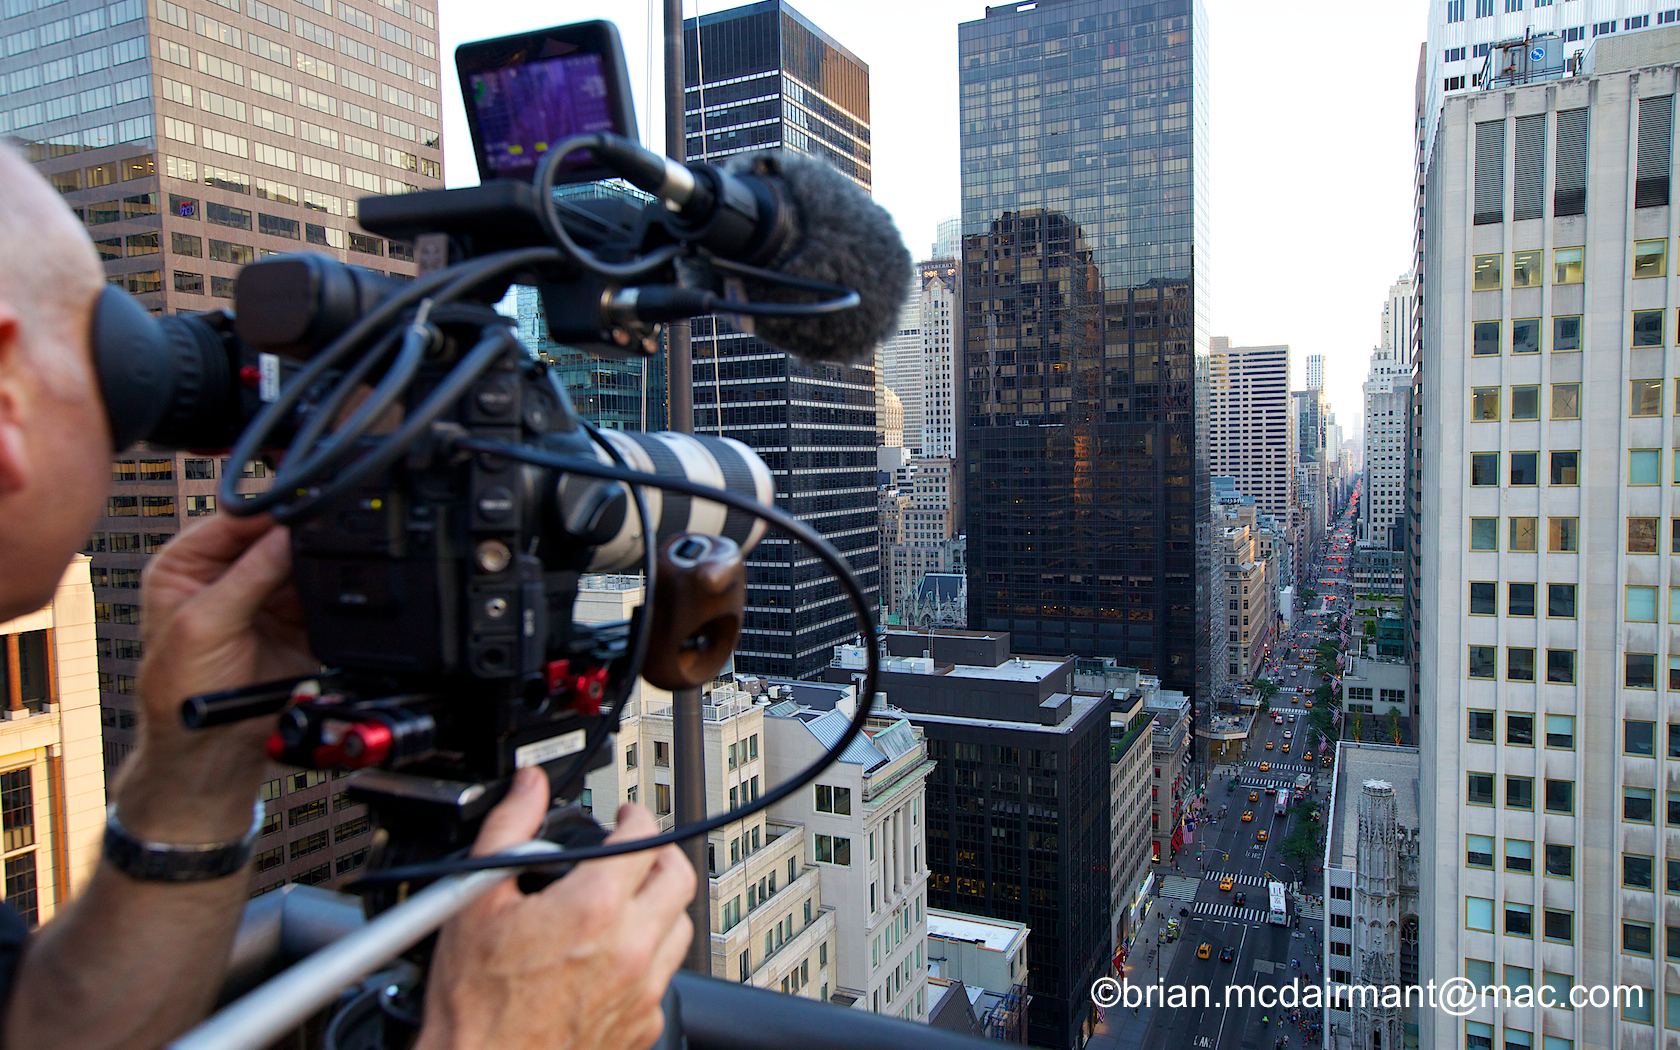 On location in New York